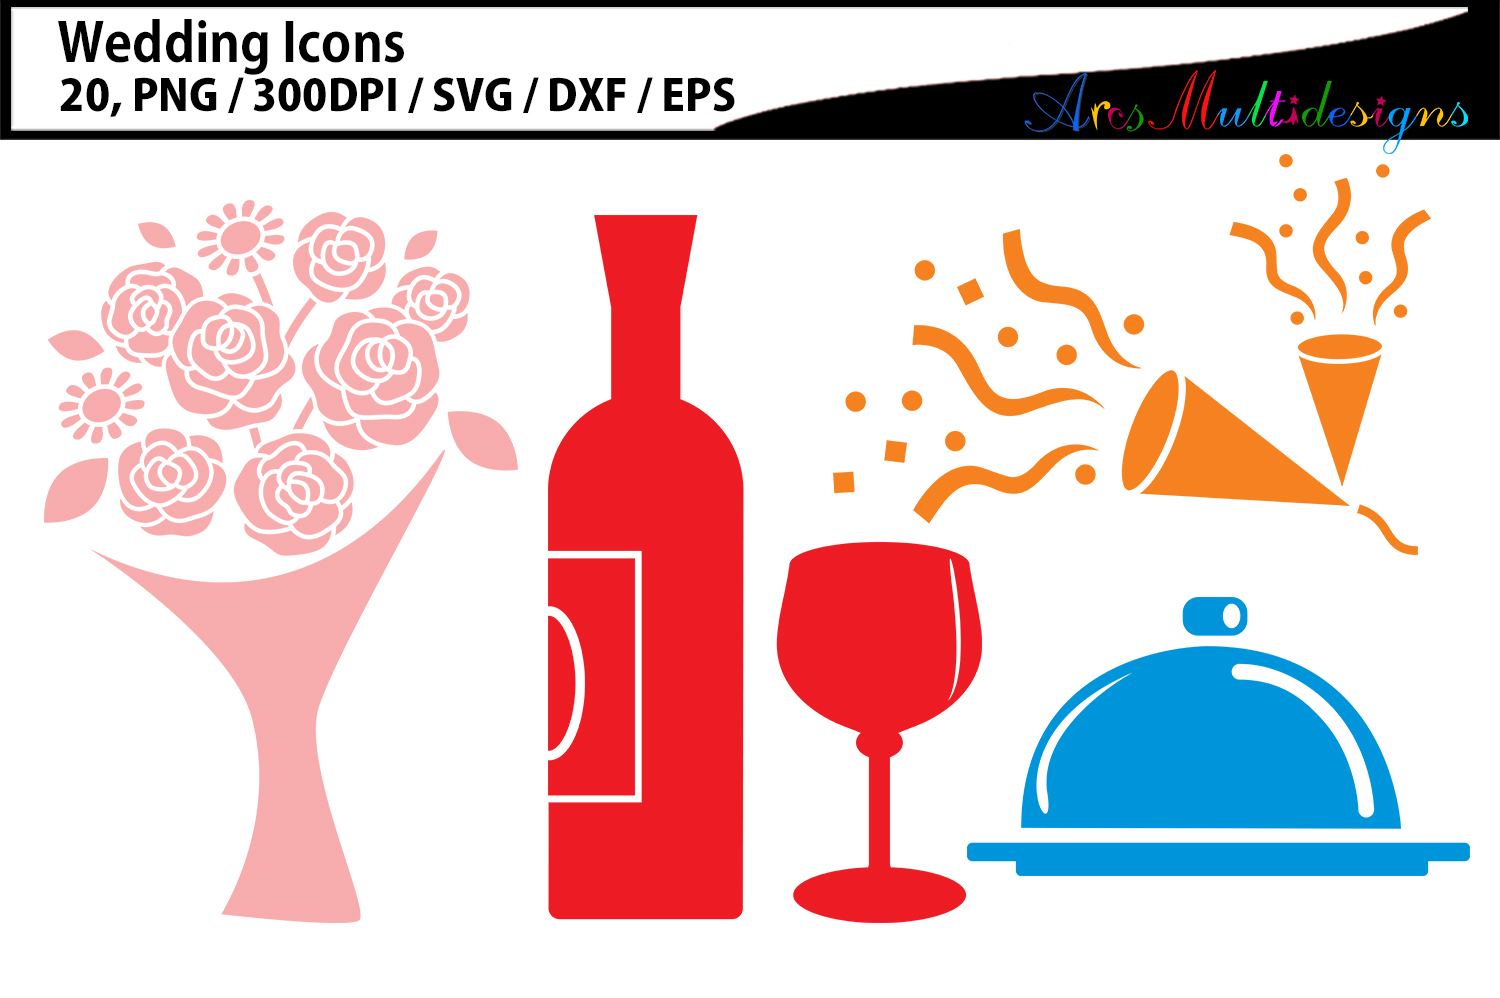 Wedding clipart SVG / Wedding party icon clipart example image 3